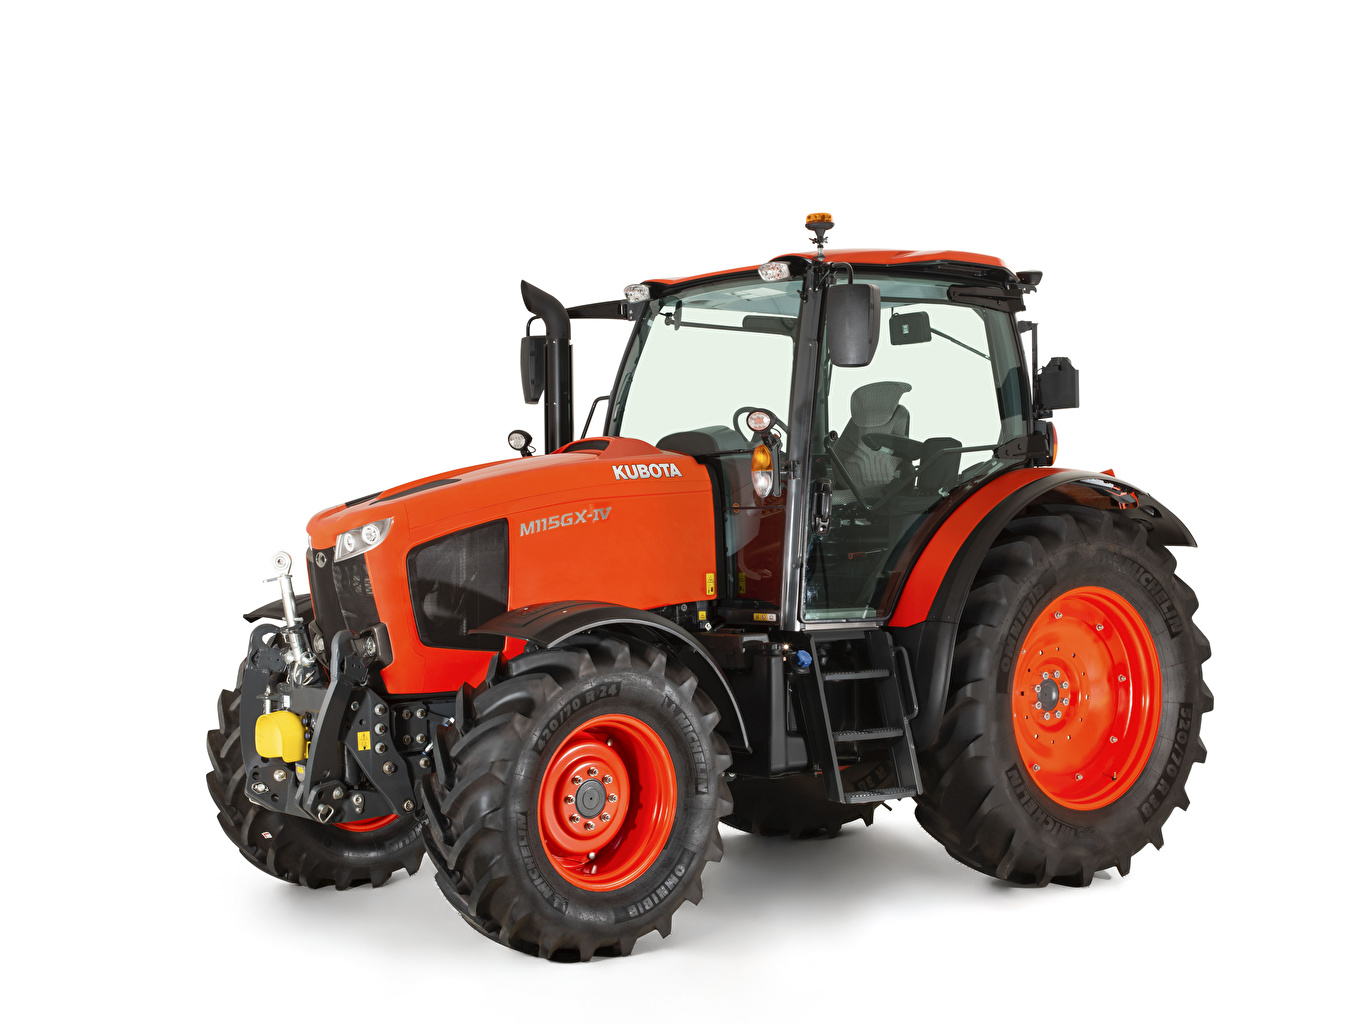 Picture Tractor Kubota M115GX-IV, 2018 -- Red White background tractors